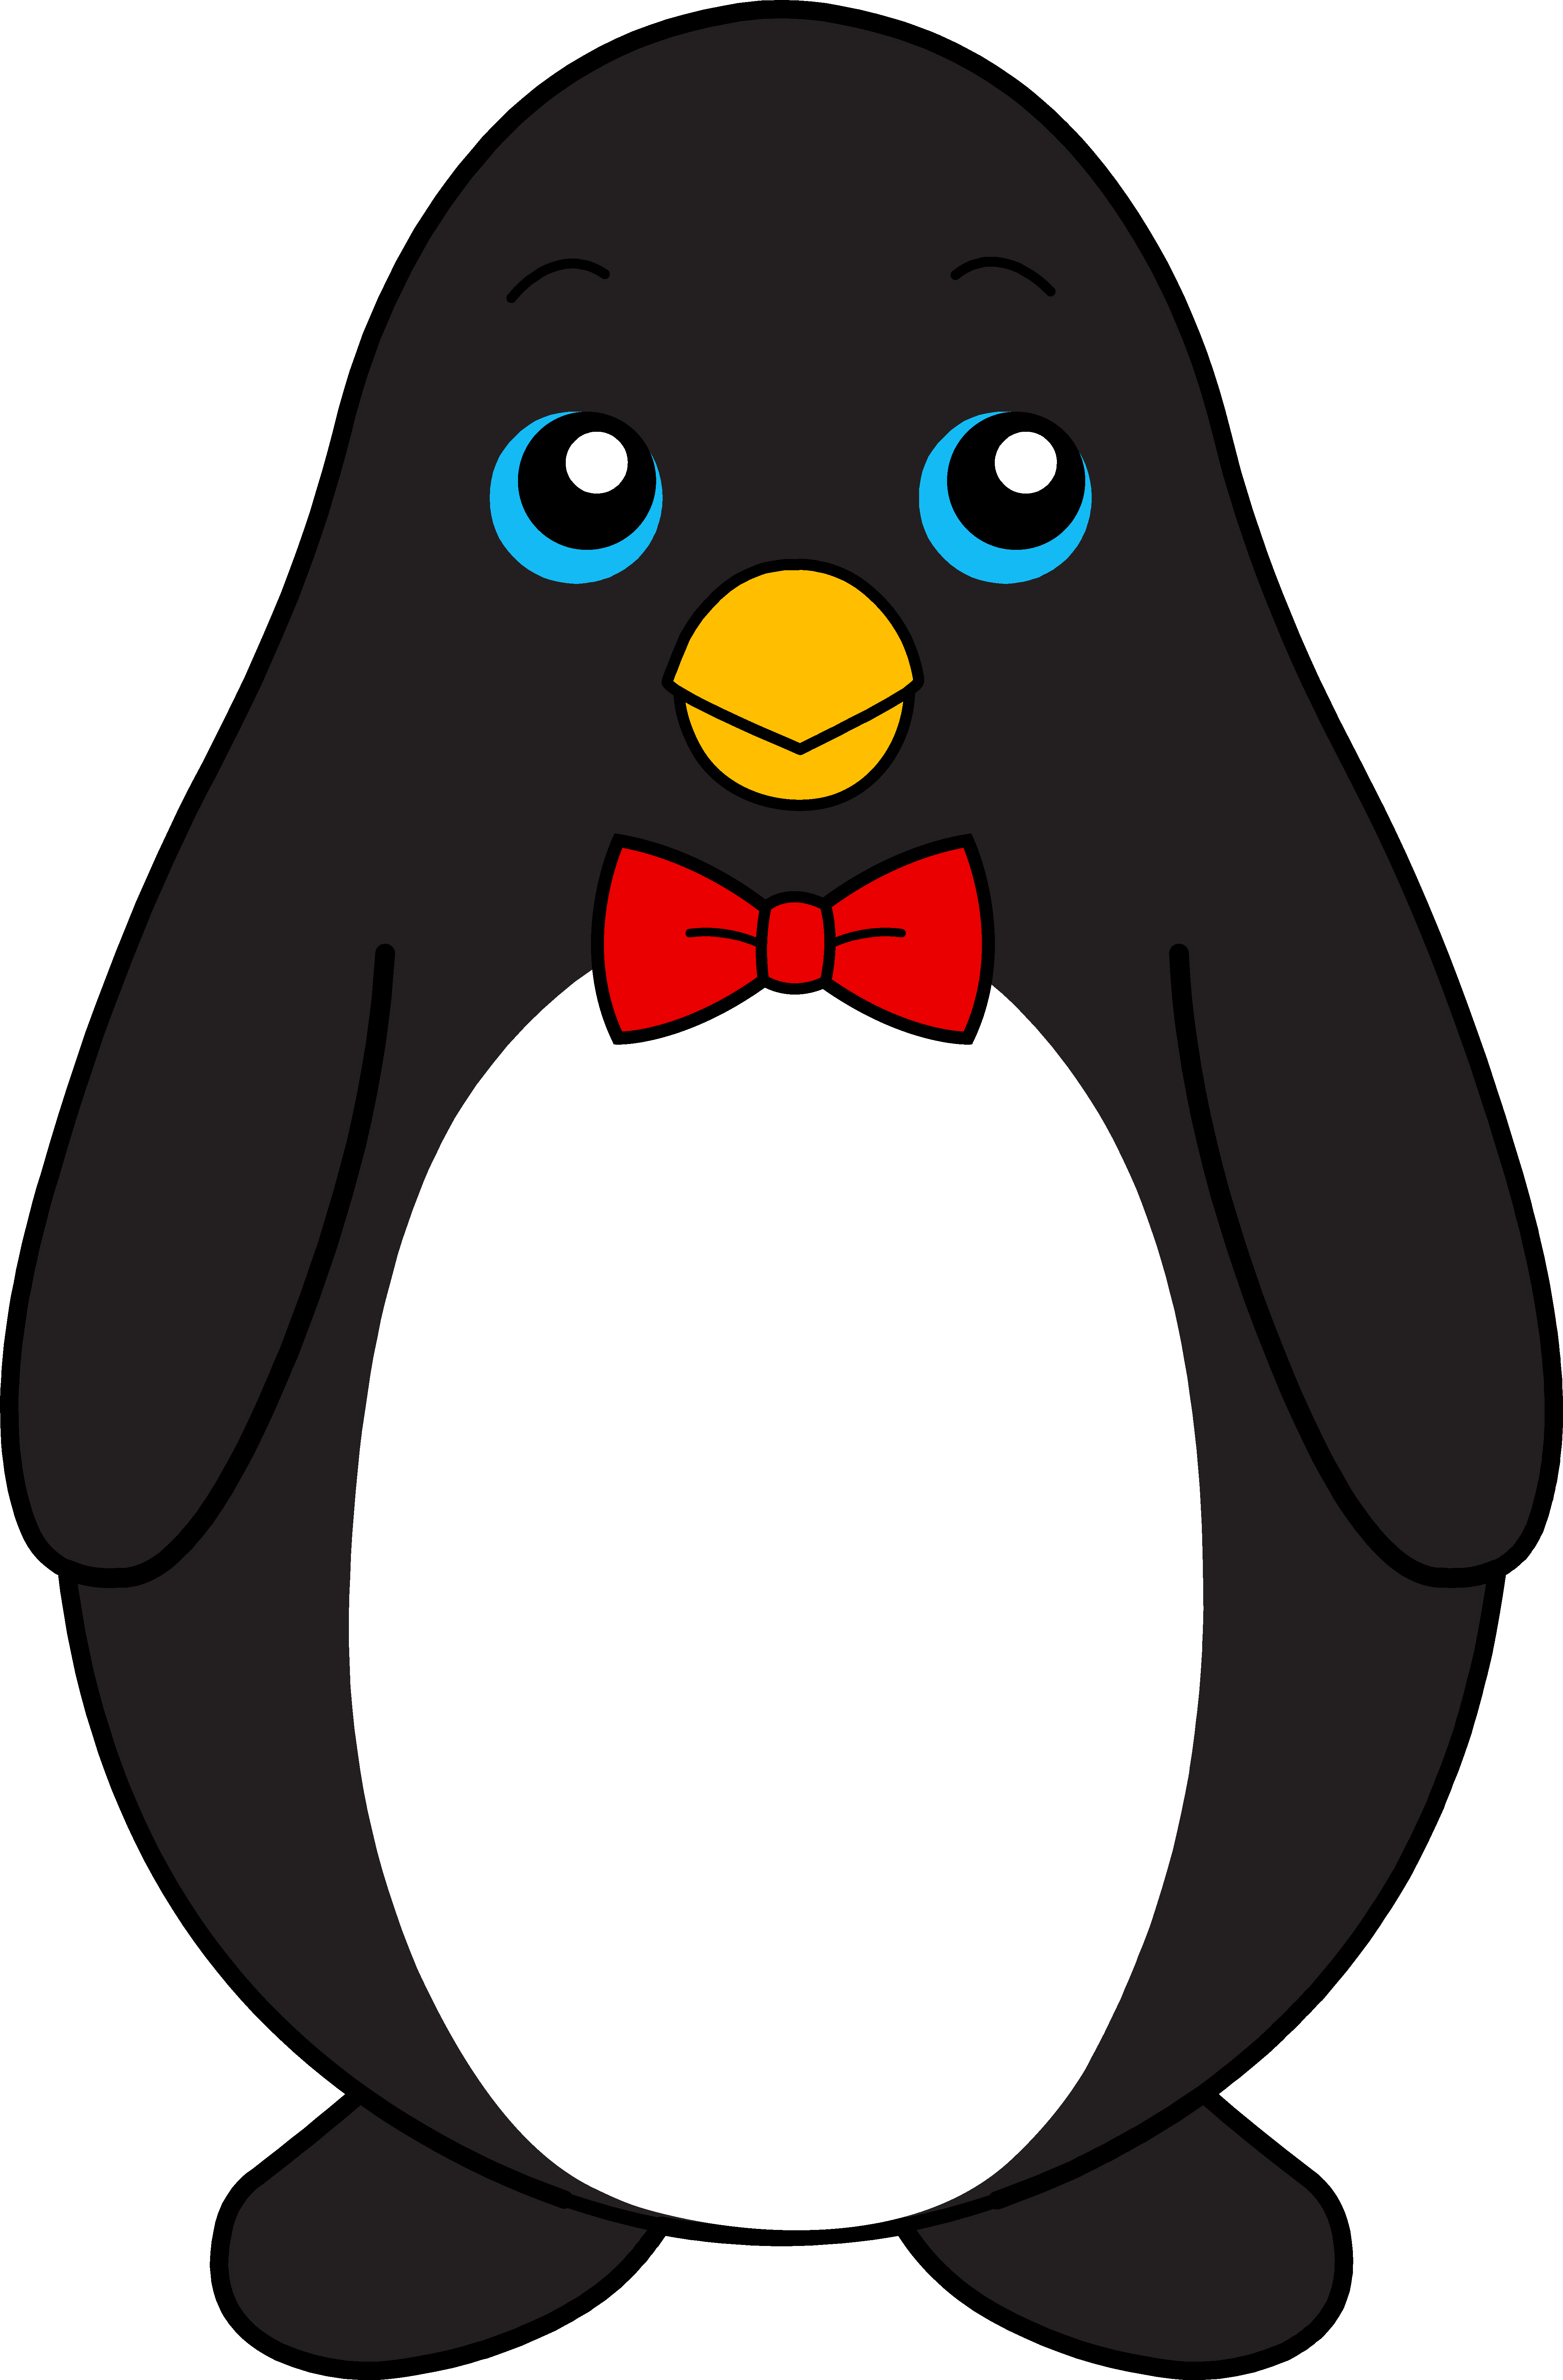 clipart royalty free library Clipart black and white. Drawing penguin cute